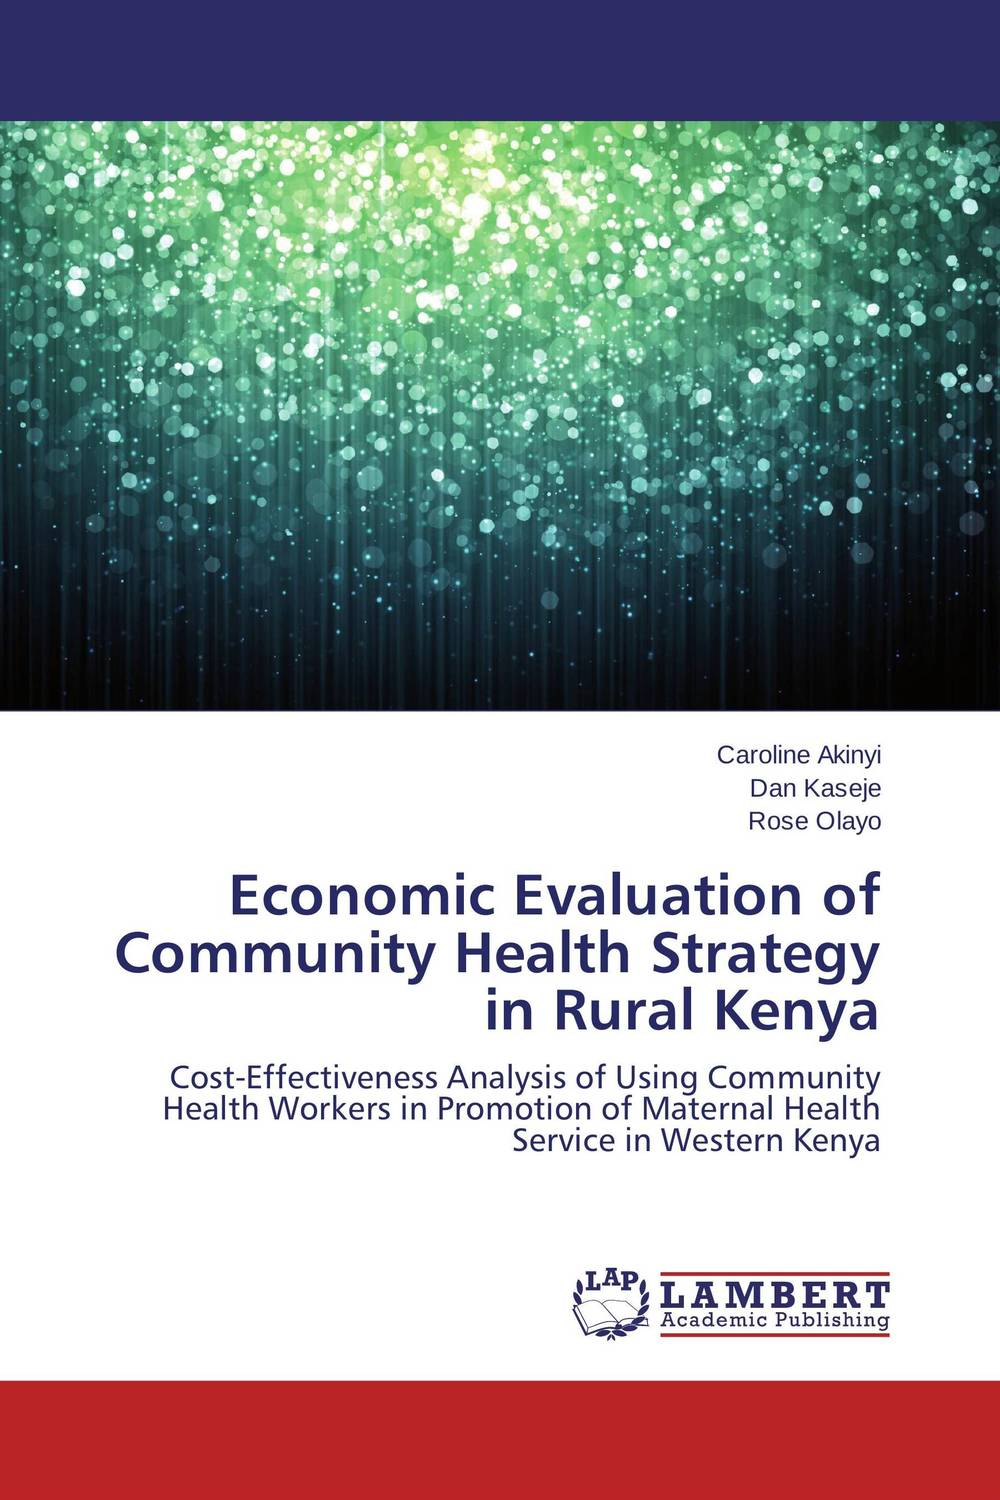 Economic Evaluation of Community Health Strategy in Rural Kenya maureen a adoyo health service delivery in kenya